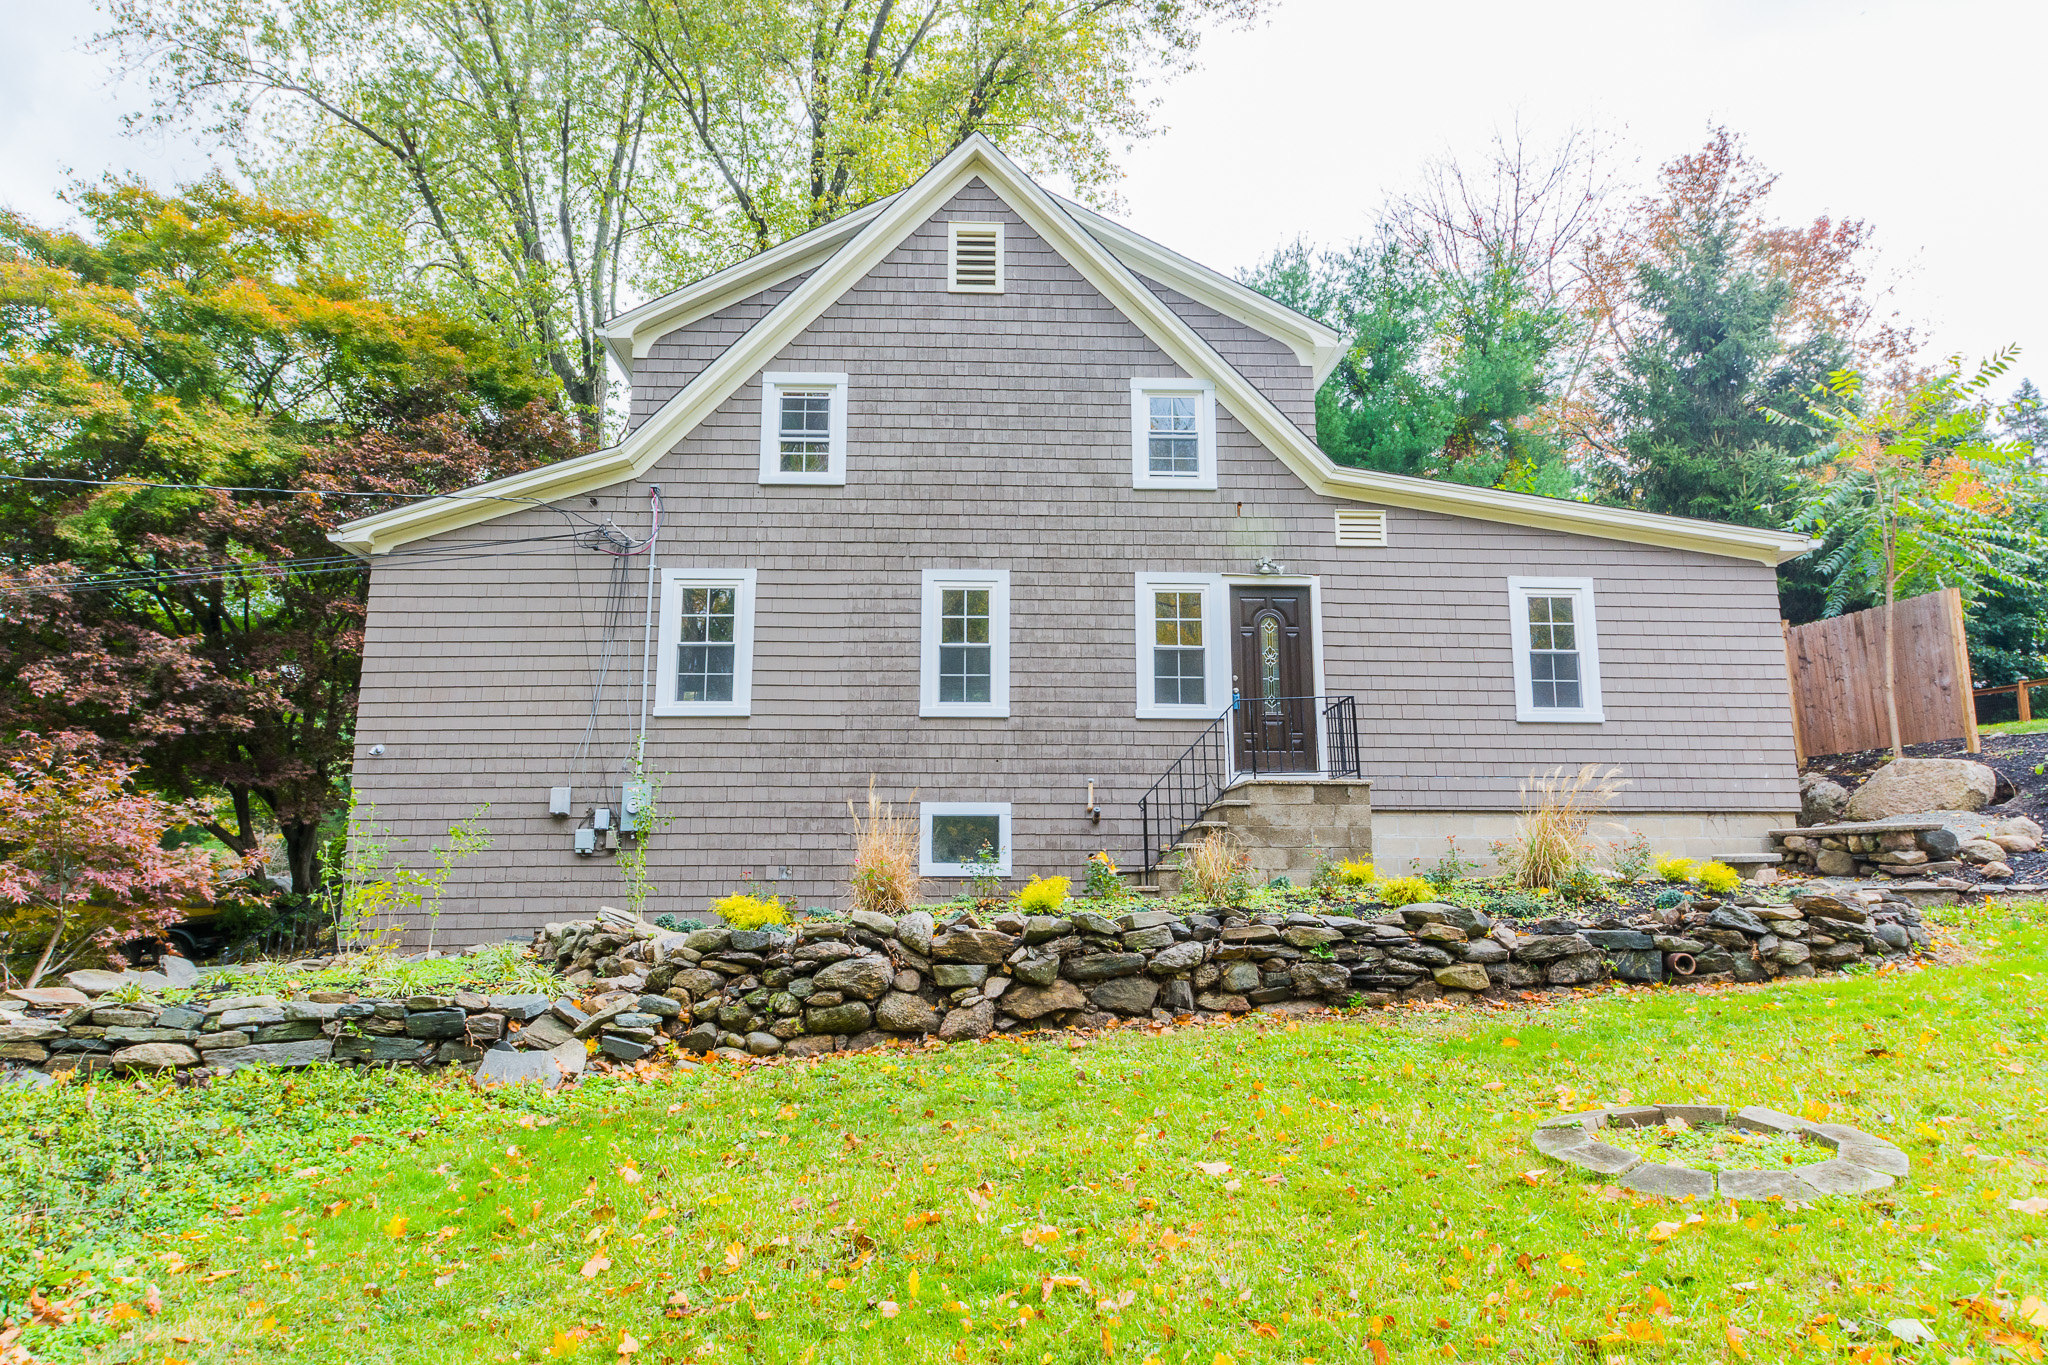 Single Family Home for Sale at Completely Remodeled- Lake Community 45 Harbor Ridge Road Danbury, Connecticut, 06811 United States